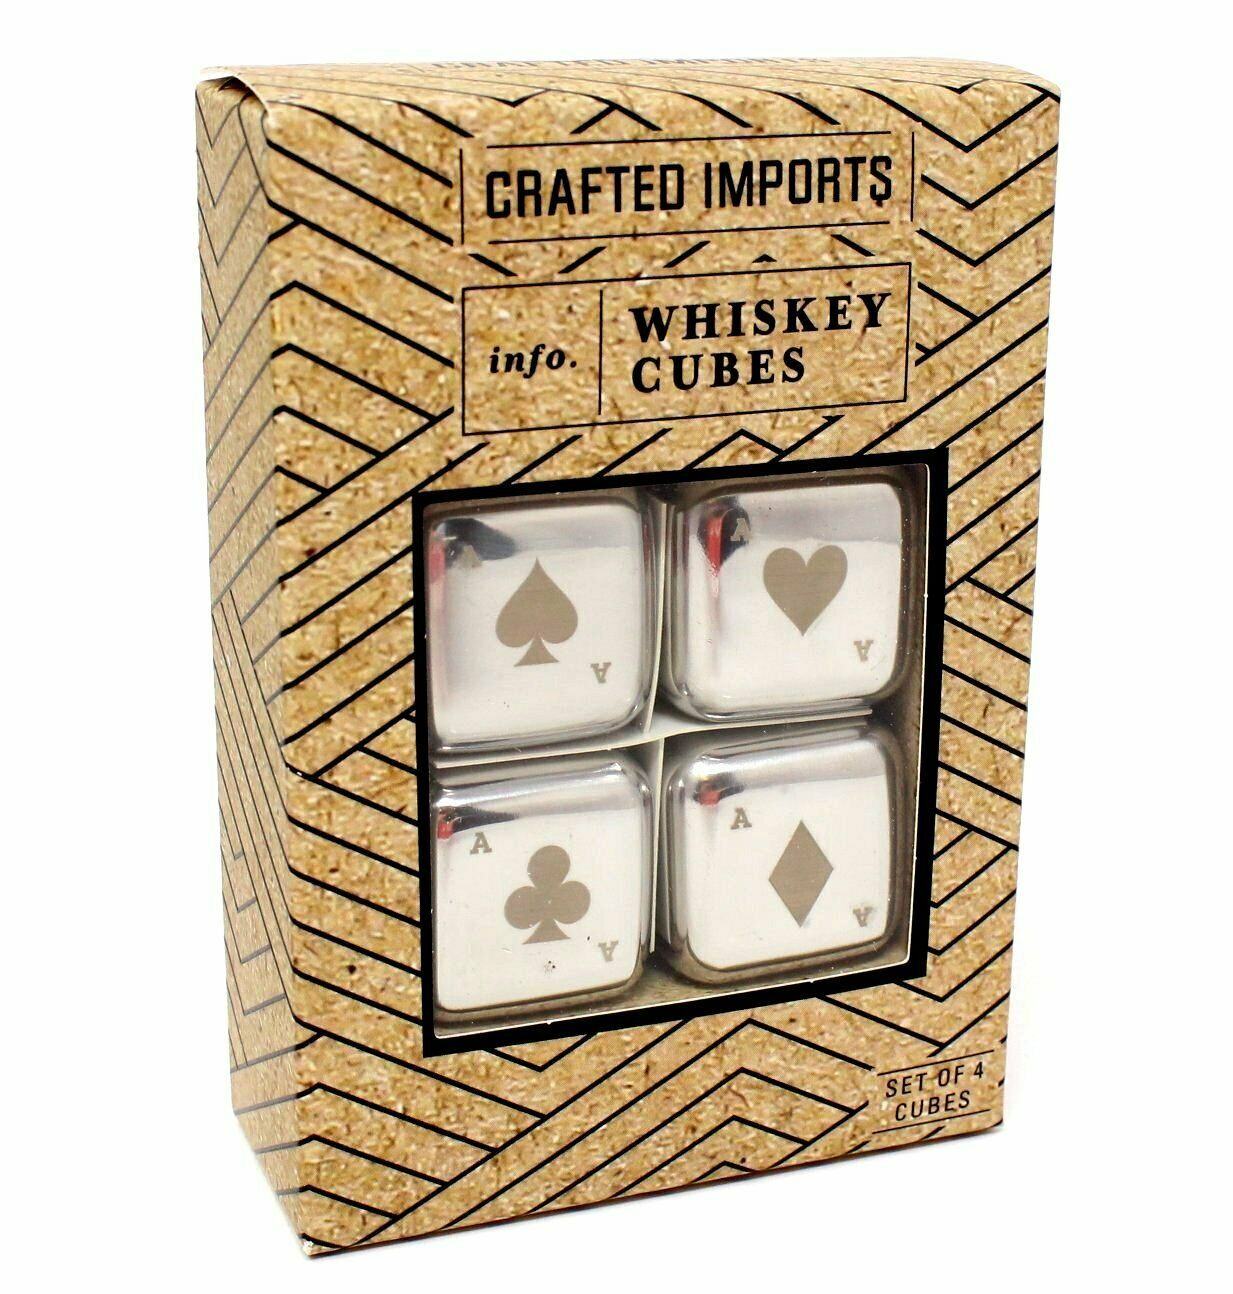 Primary image for Crafted Imports Whiskey Cubes Stainless Steel Poker Style Chilling Stone Reusabl